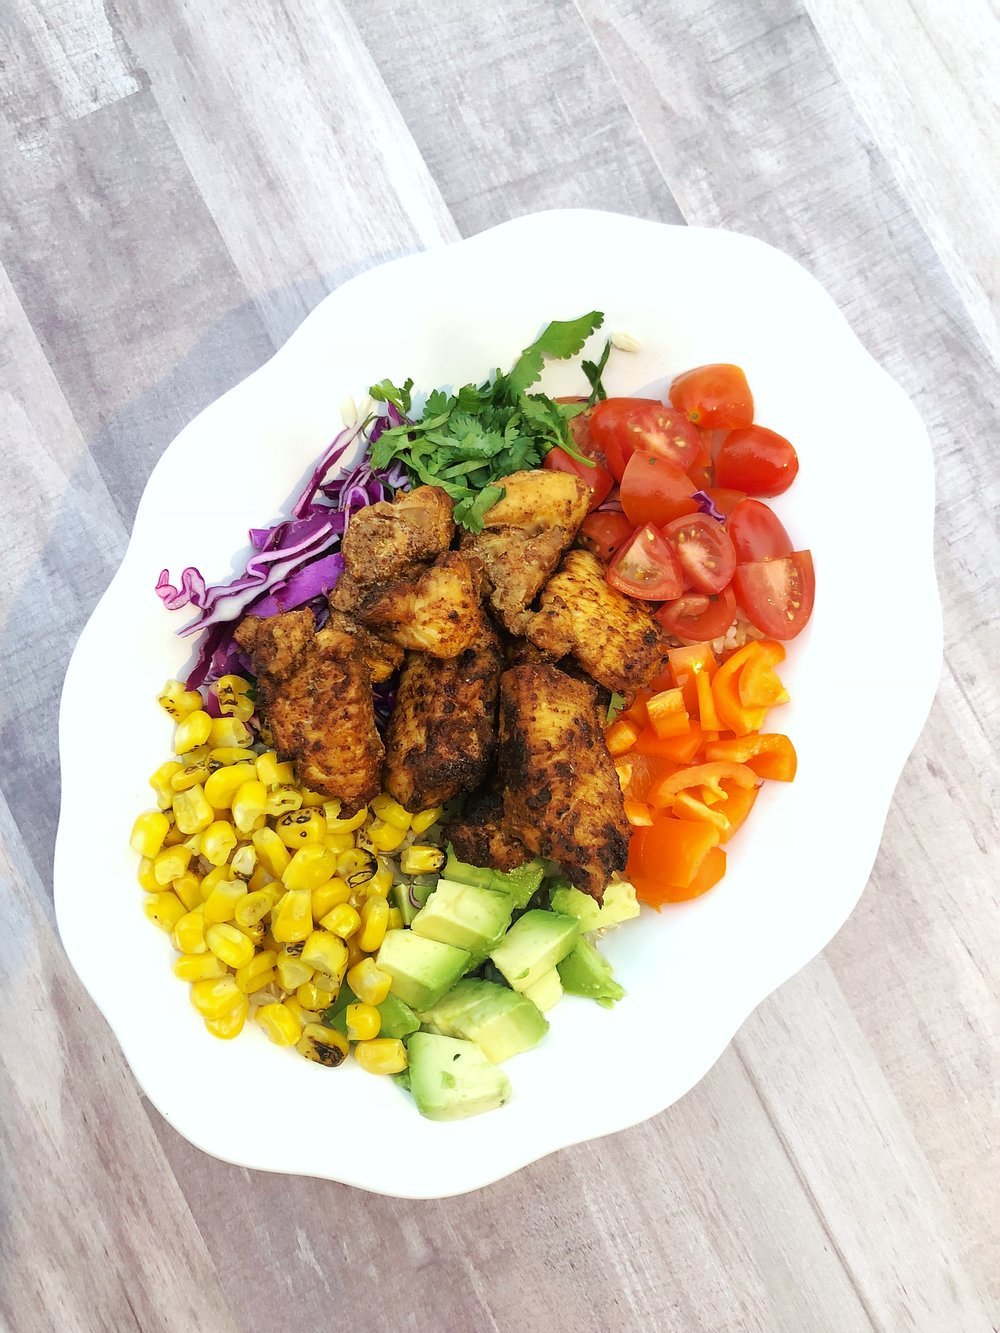 Yummy Chicken and Veggie Protein Bowls!  https://www.cardiocoffeeandkale.com/home/2018/4/11/delicious-chicken-and-veggie-bowl cardiocoffeeandkale.com